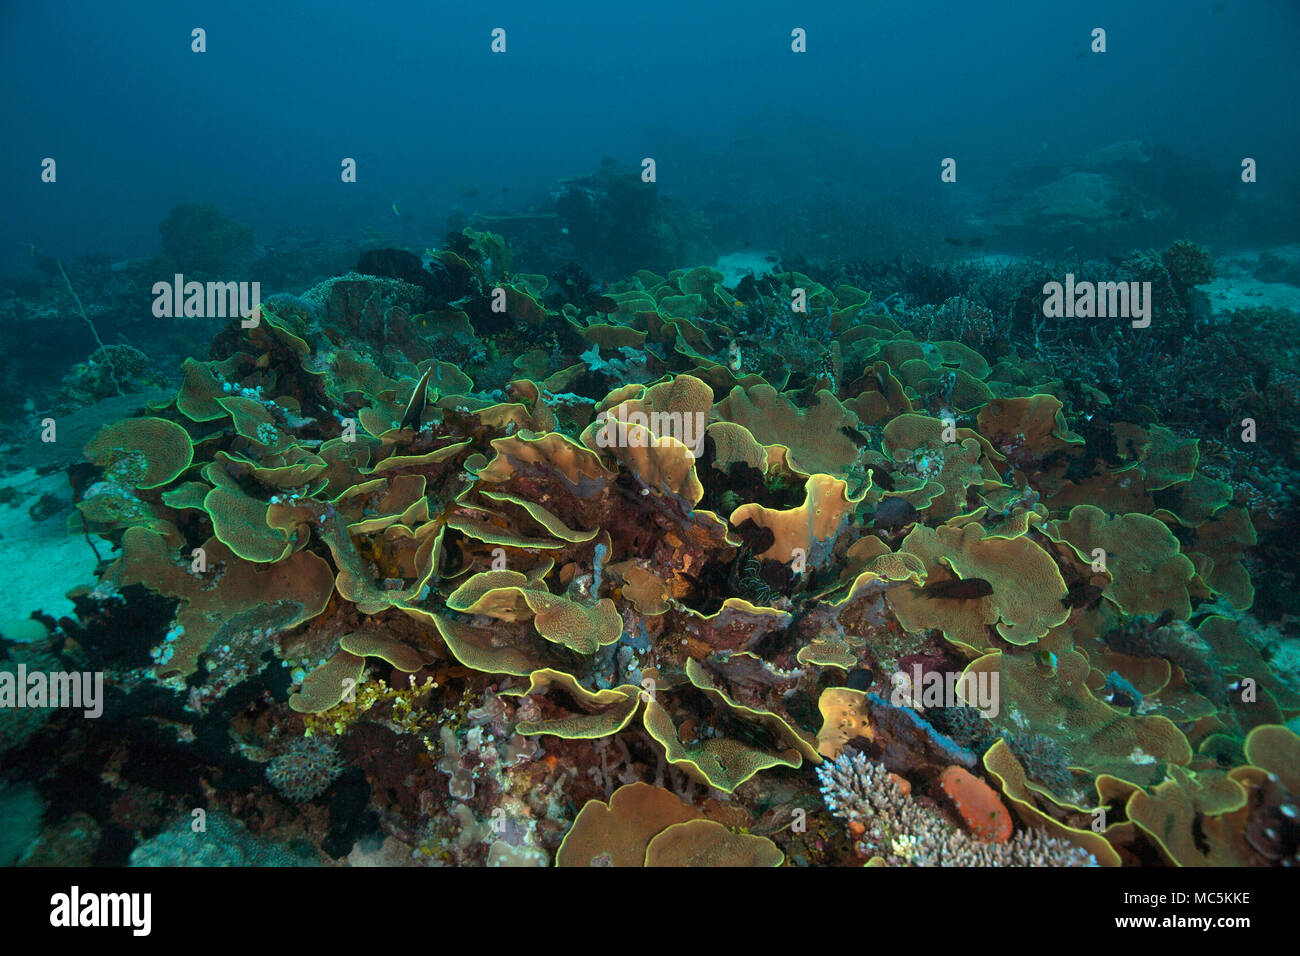 Yellow scroll coral (Turbinaria reniformes). Picture was taken in the Ceram sea, Raja Ampat, West Papua, Indonesia Stock Photo